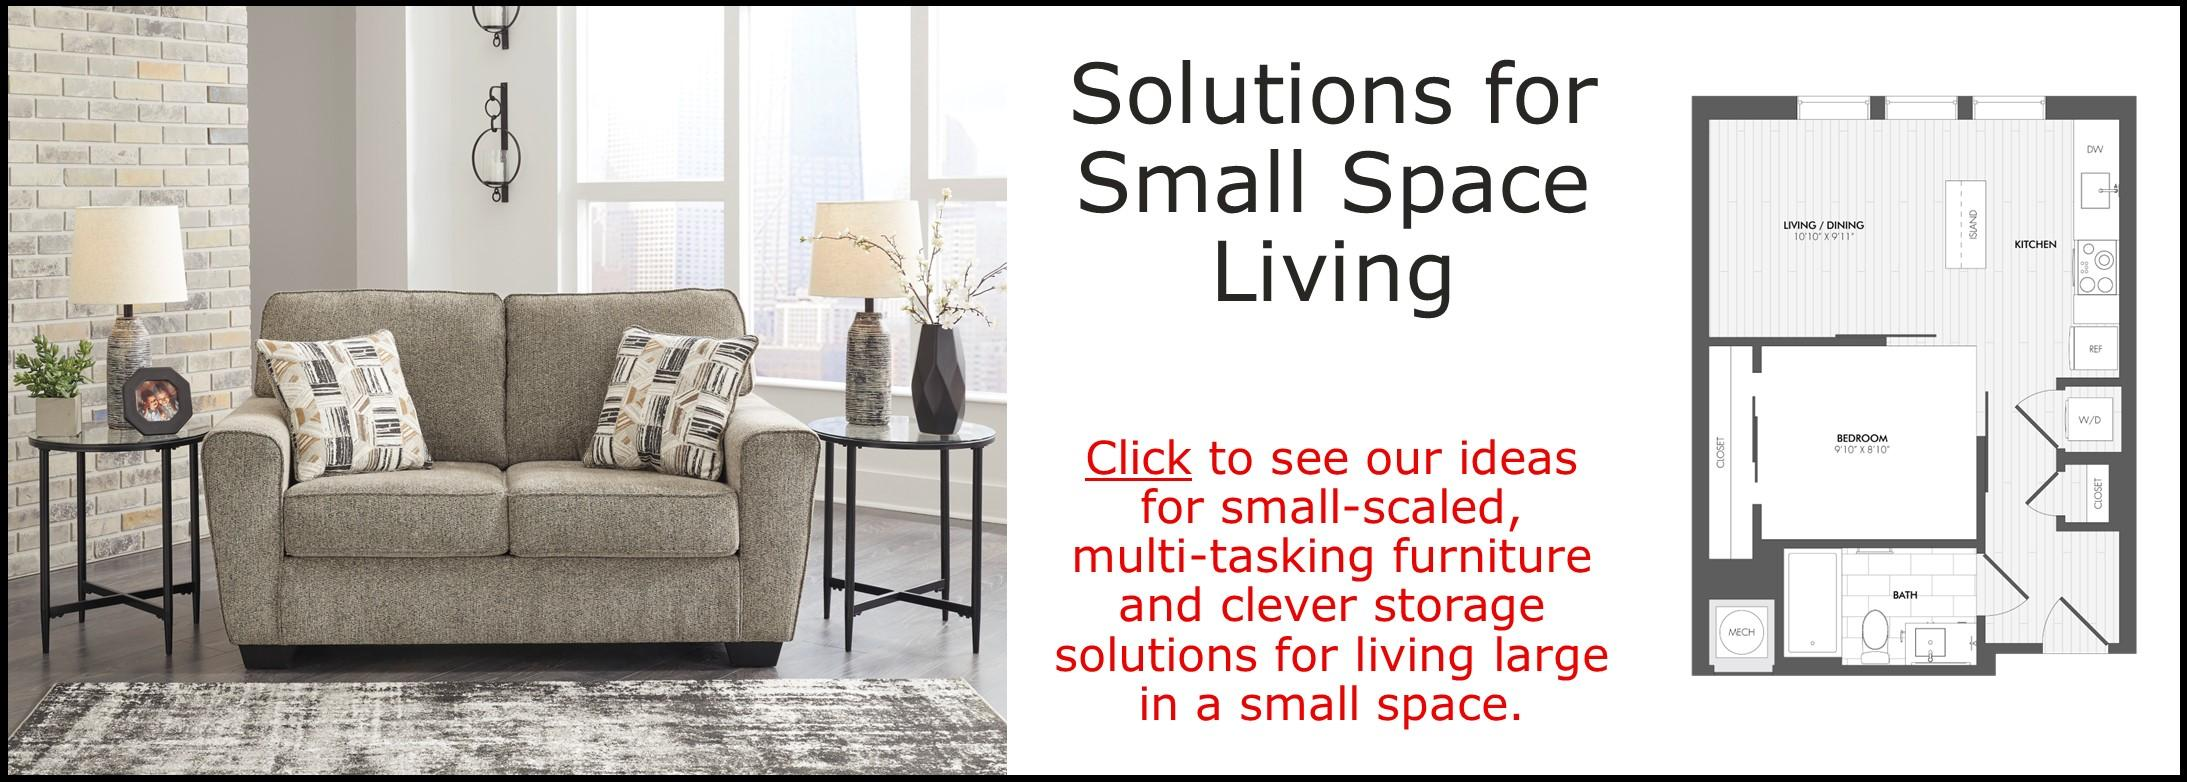 SOLUTIONS FOR SMALL SPACE LIVING